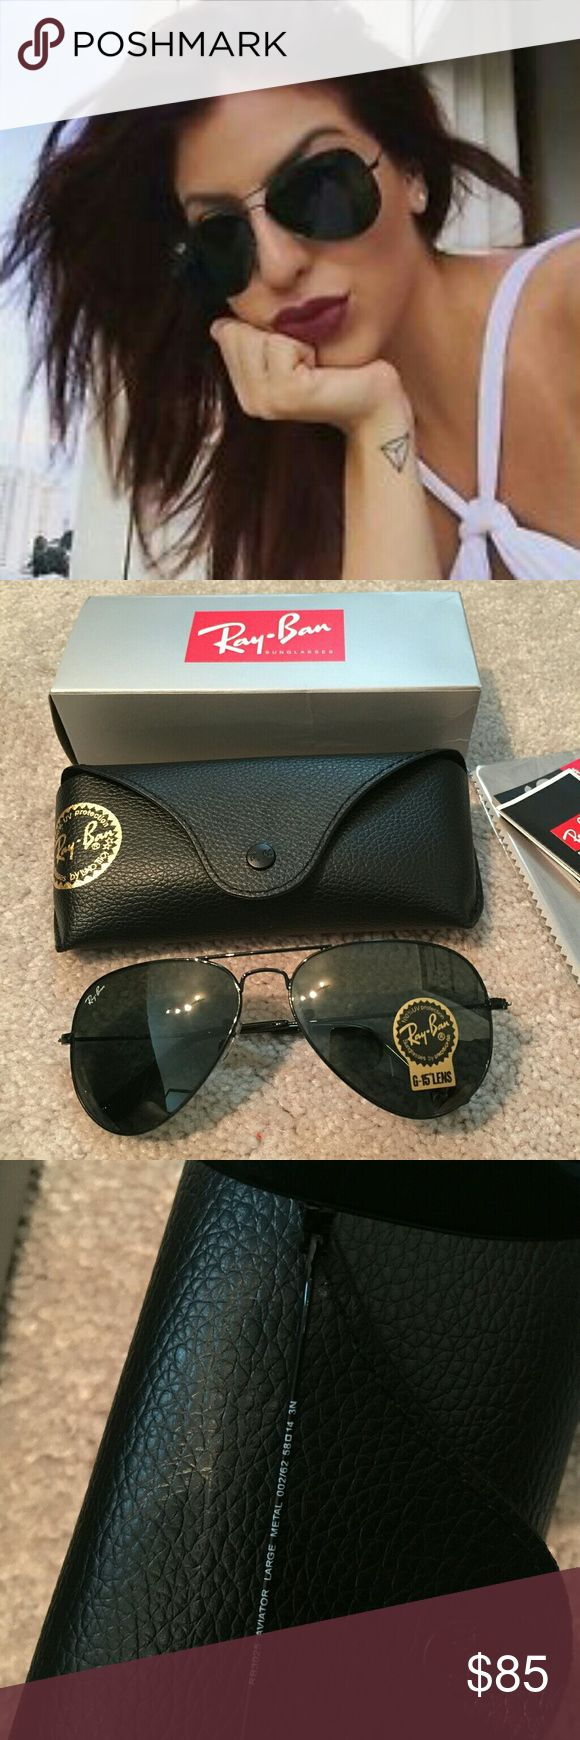 Authentic Ray Ban Aviator RB3025 in black frame ❤️️All my item are 100% Authentic / Real Ray ban ❤️Brand new never used  ❤️️Ray Ban Aviator RB3025 lens size 58MM ❤️made in Italy ❤️Frame color black ❤️come with case,cloth, booklet and box.  💕Feel free to ask any question💕 Ray-Ban Accessories Glasses